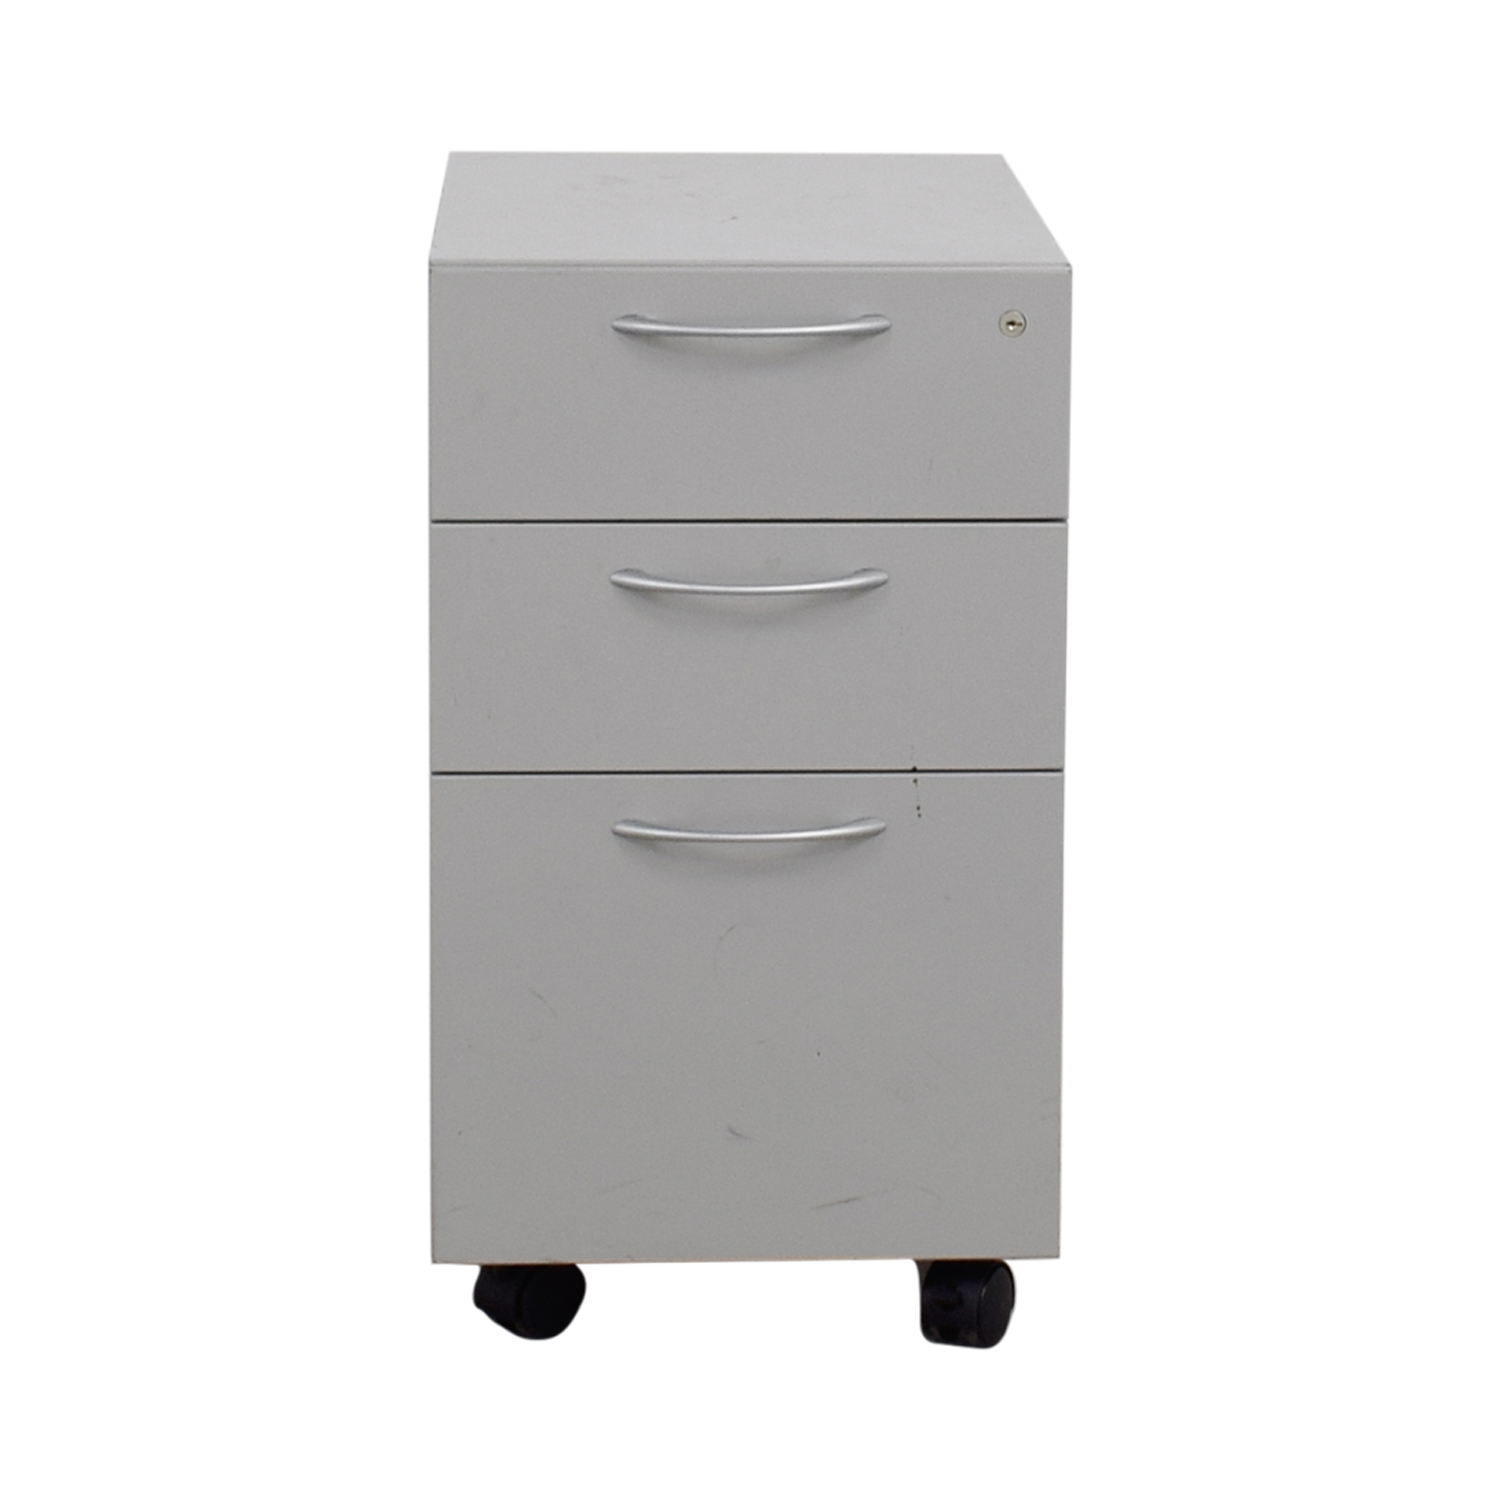 Allsteel Light Grey Two-Drawer Cabinet on Casters sale